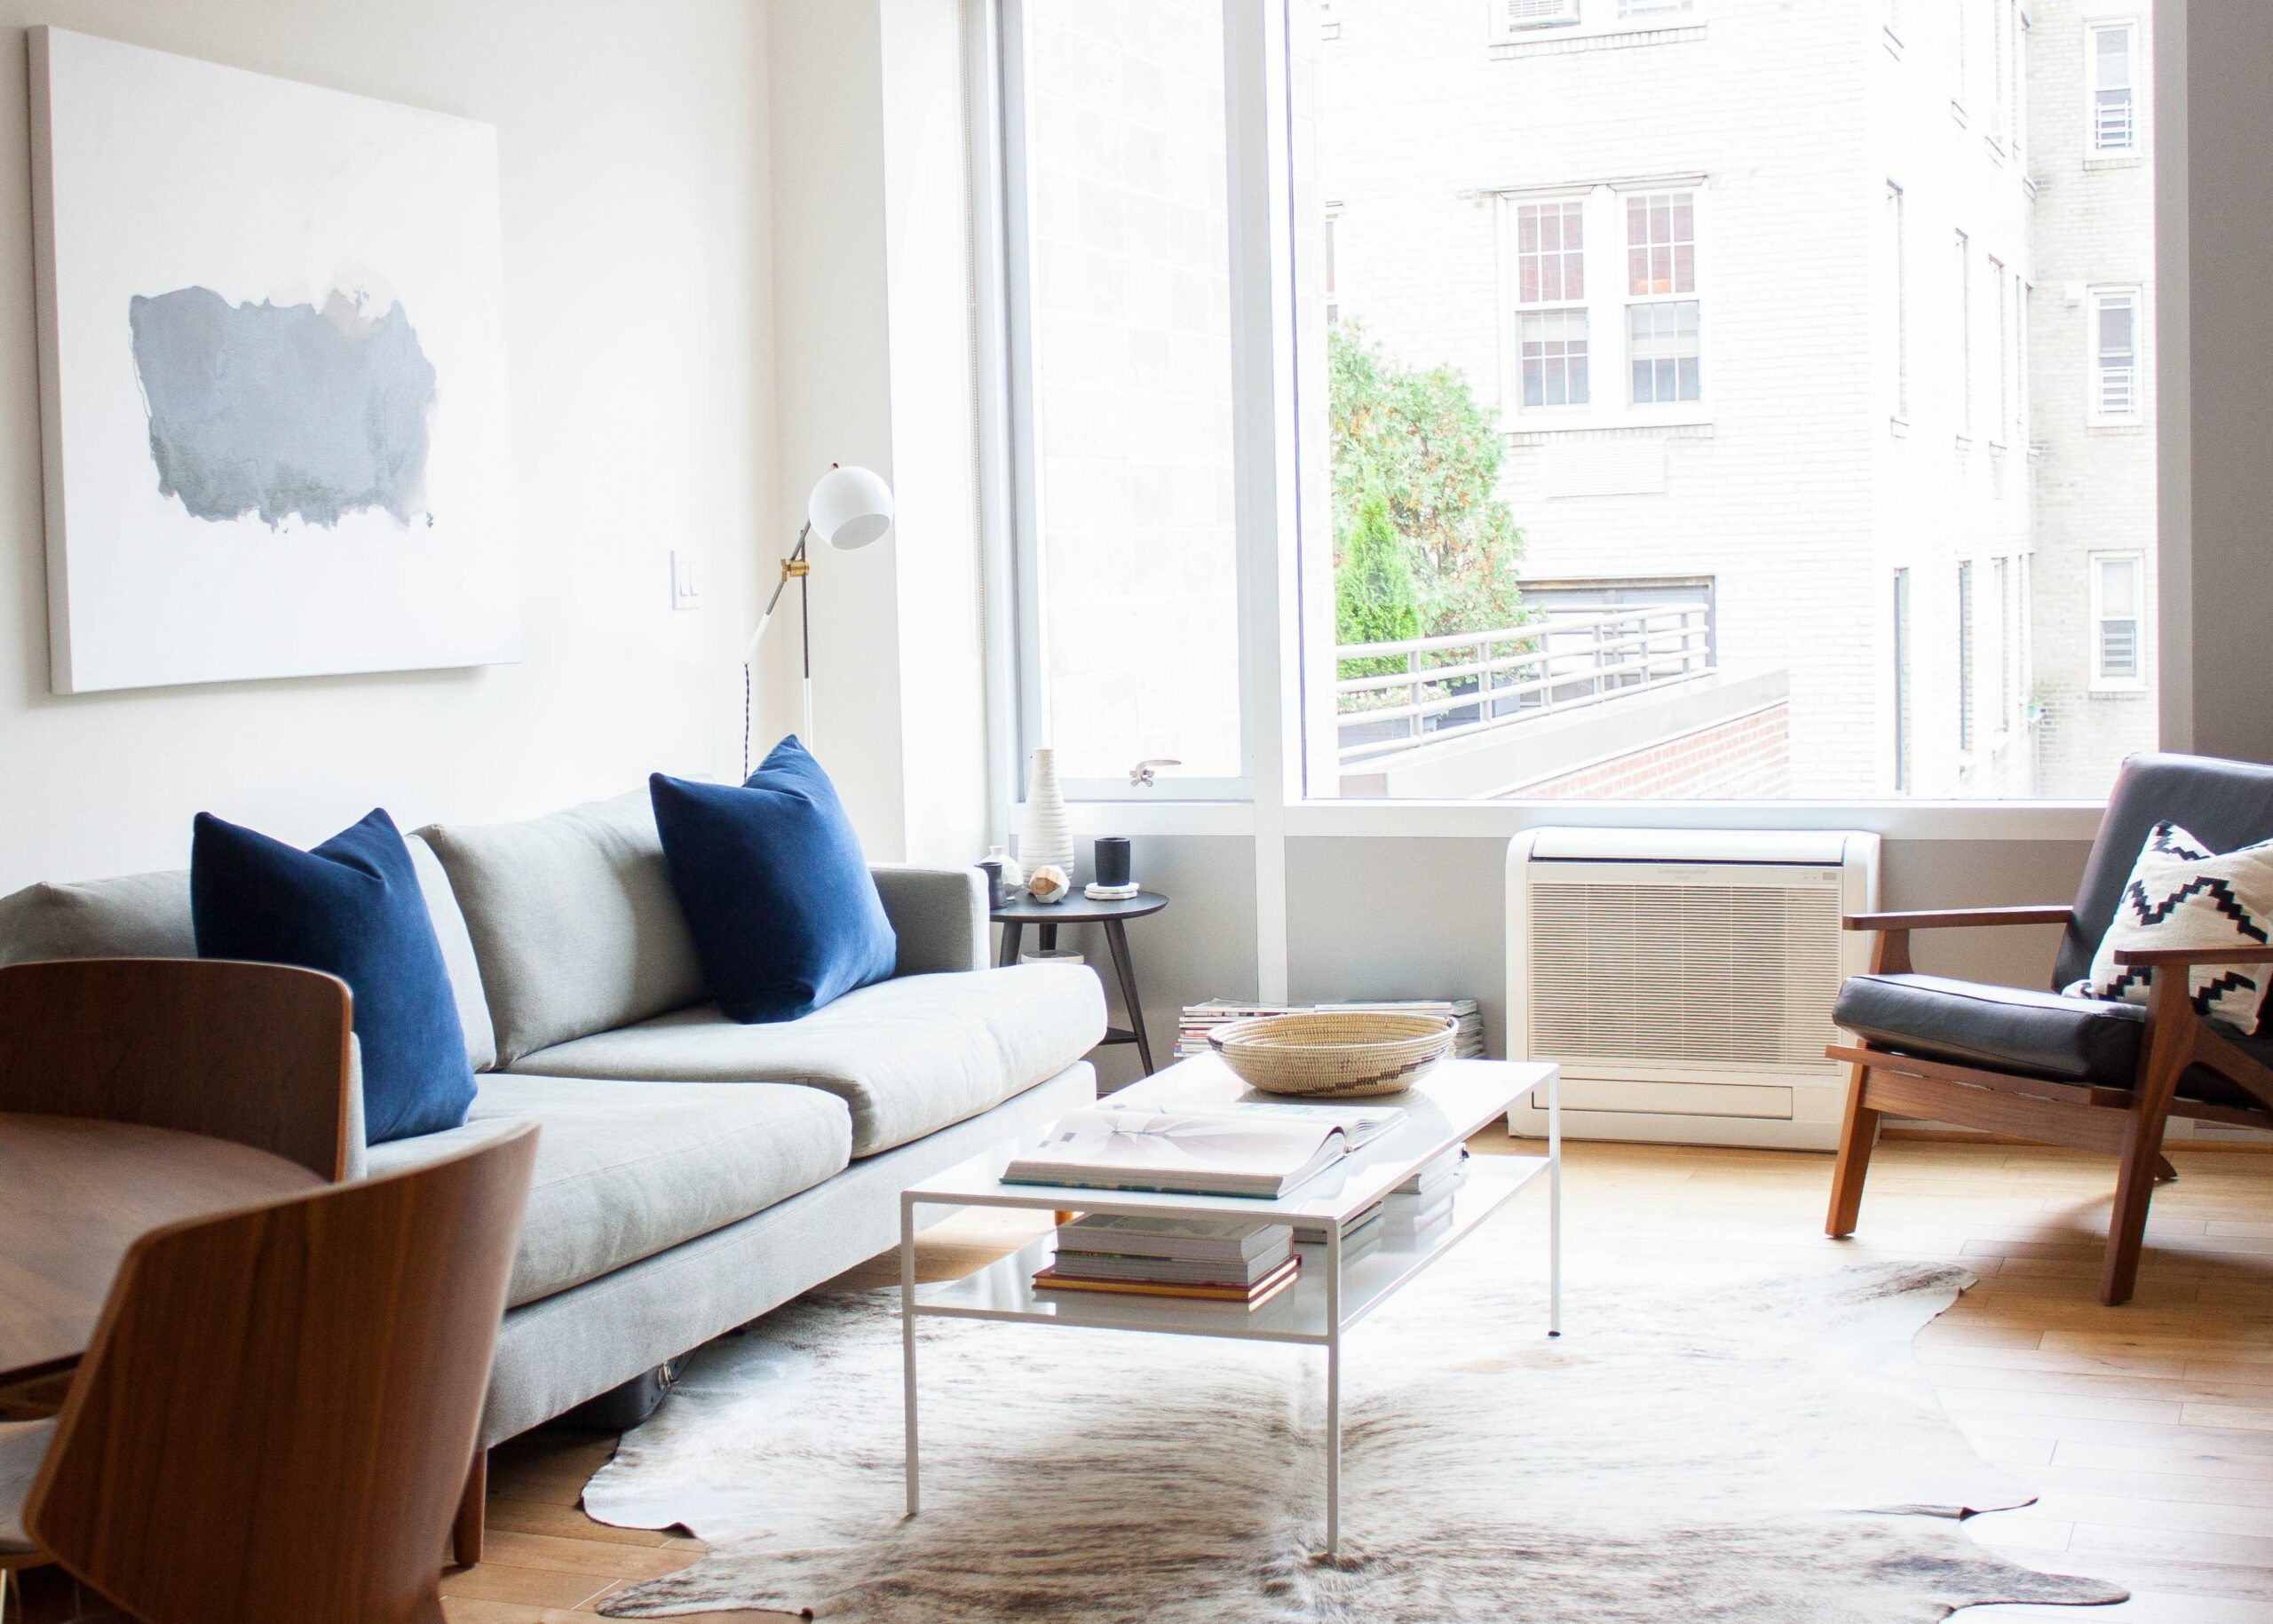 12 Small Living Room Decorating & Design Ideas - How to Decorate a ..